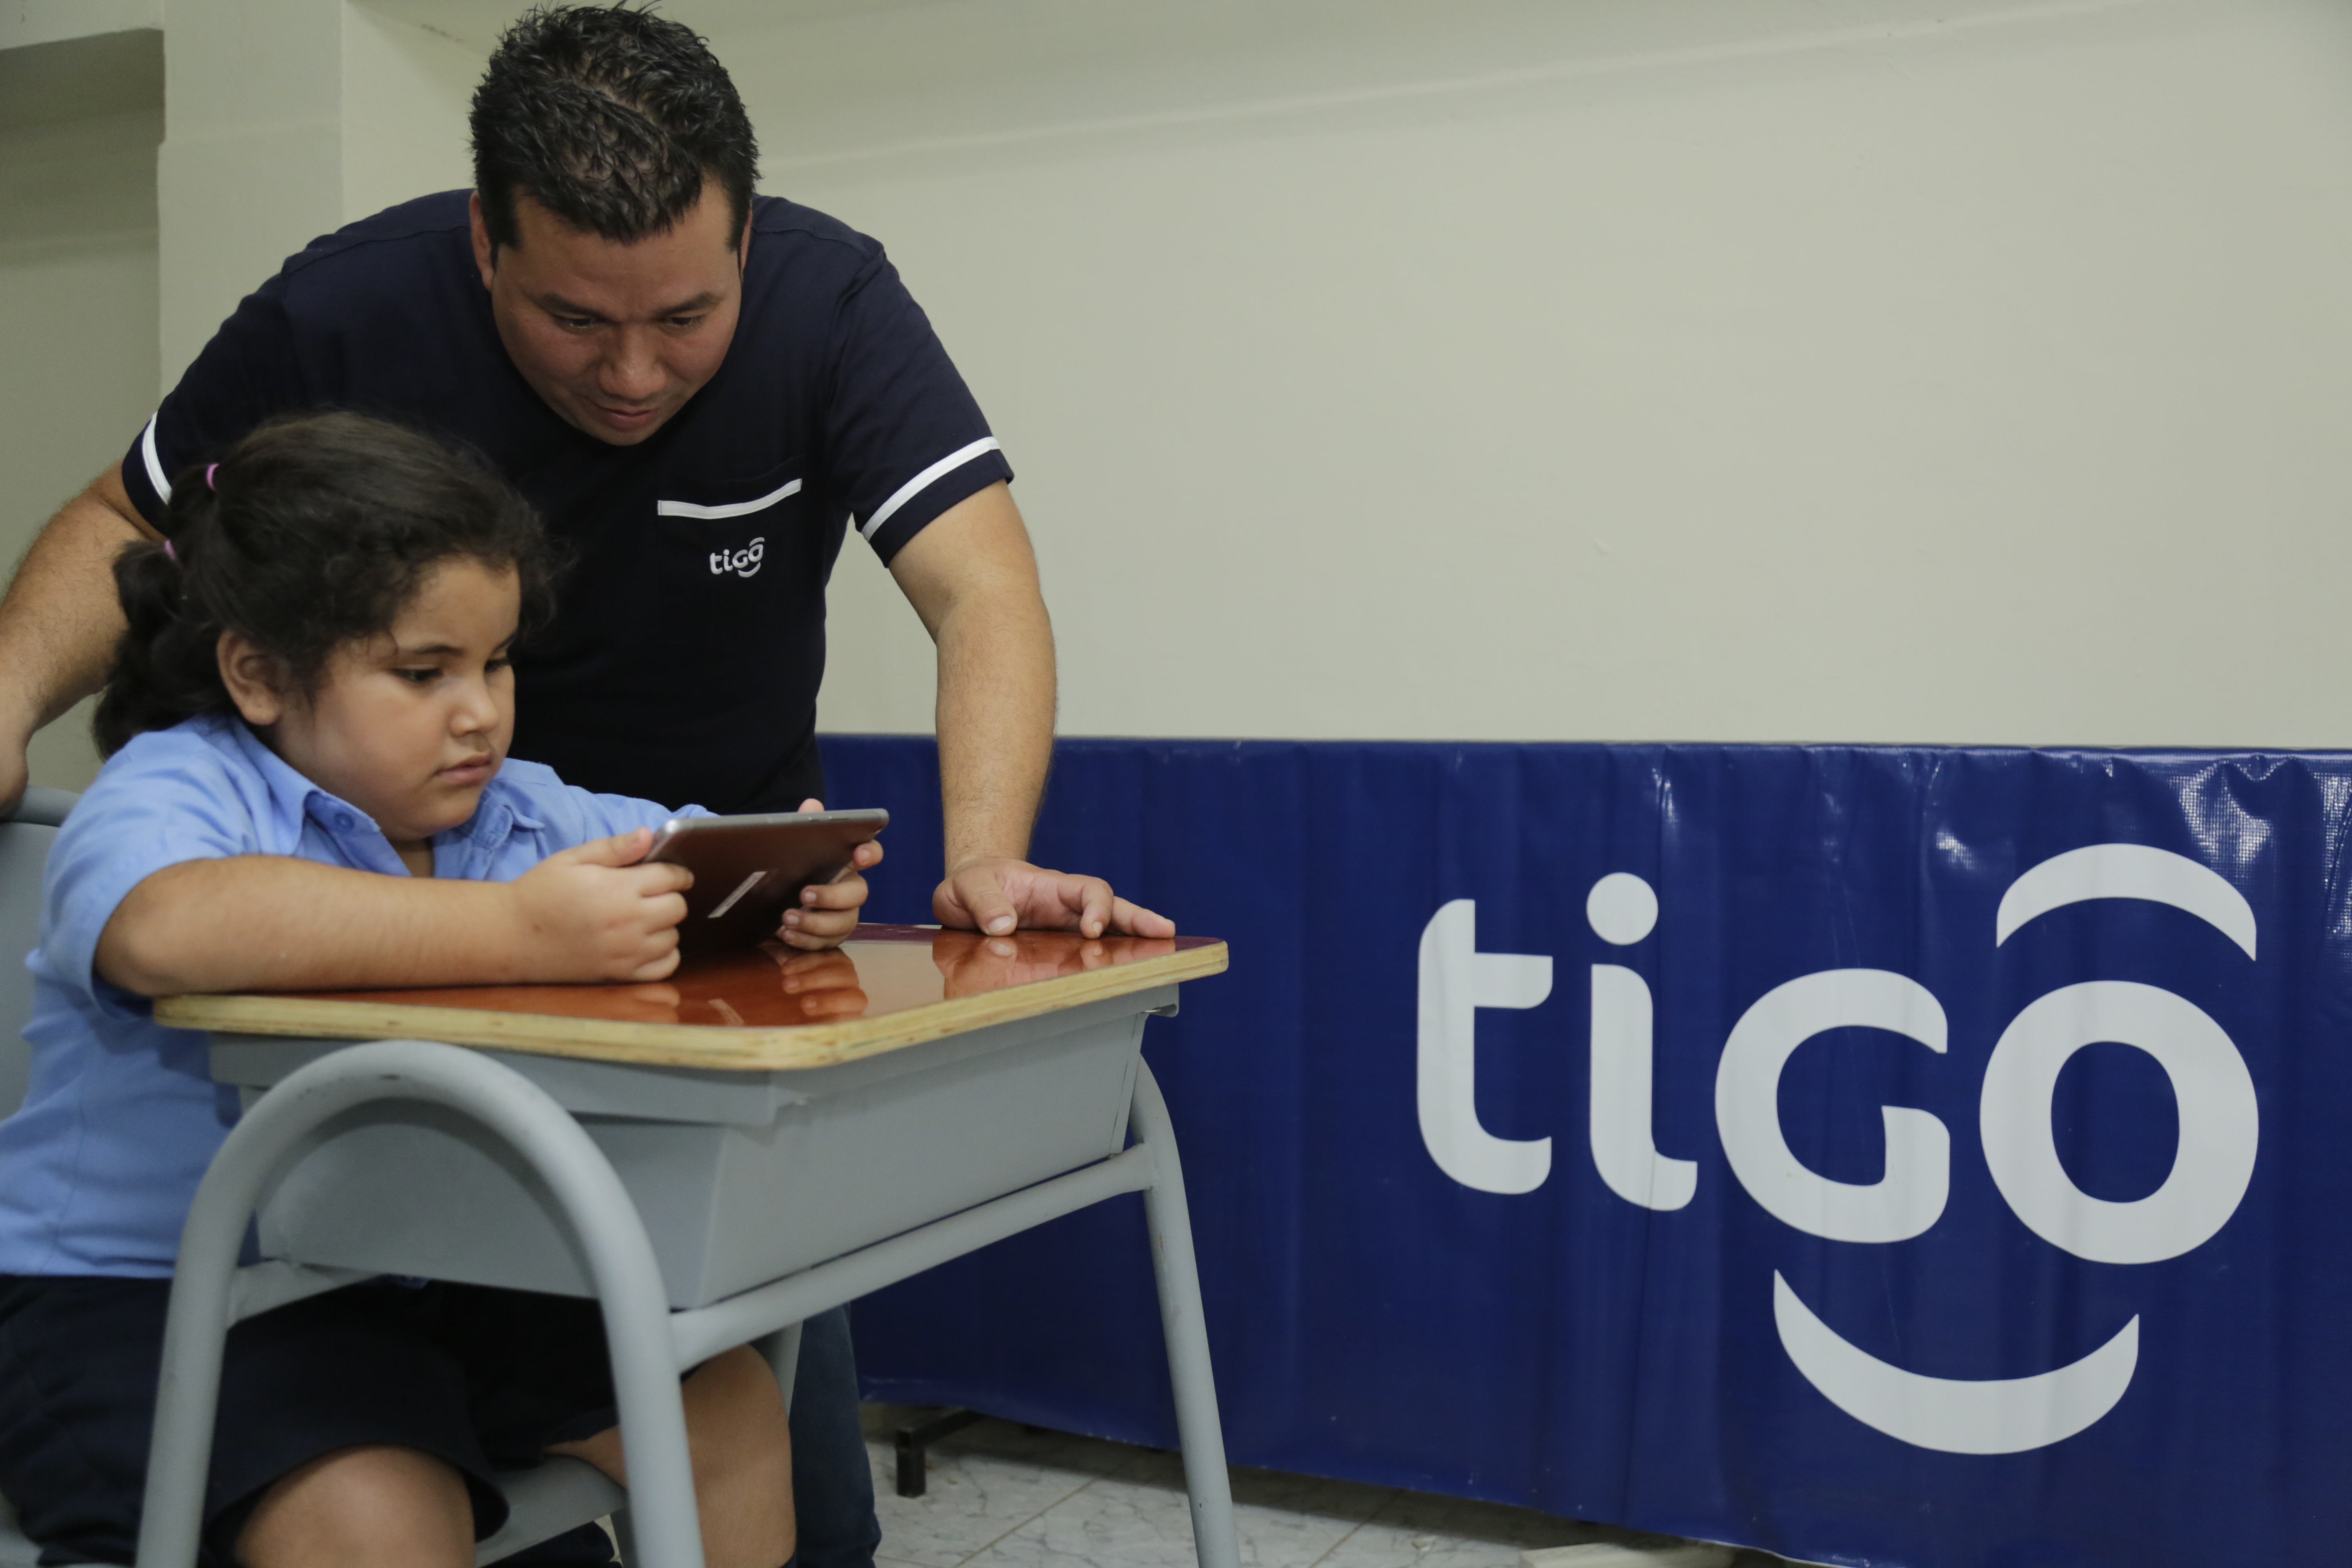 Conéctate Segur@ is a TIGO program aimed at educating children and young people in the good use of the internet.